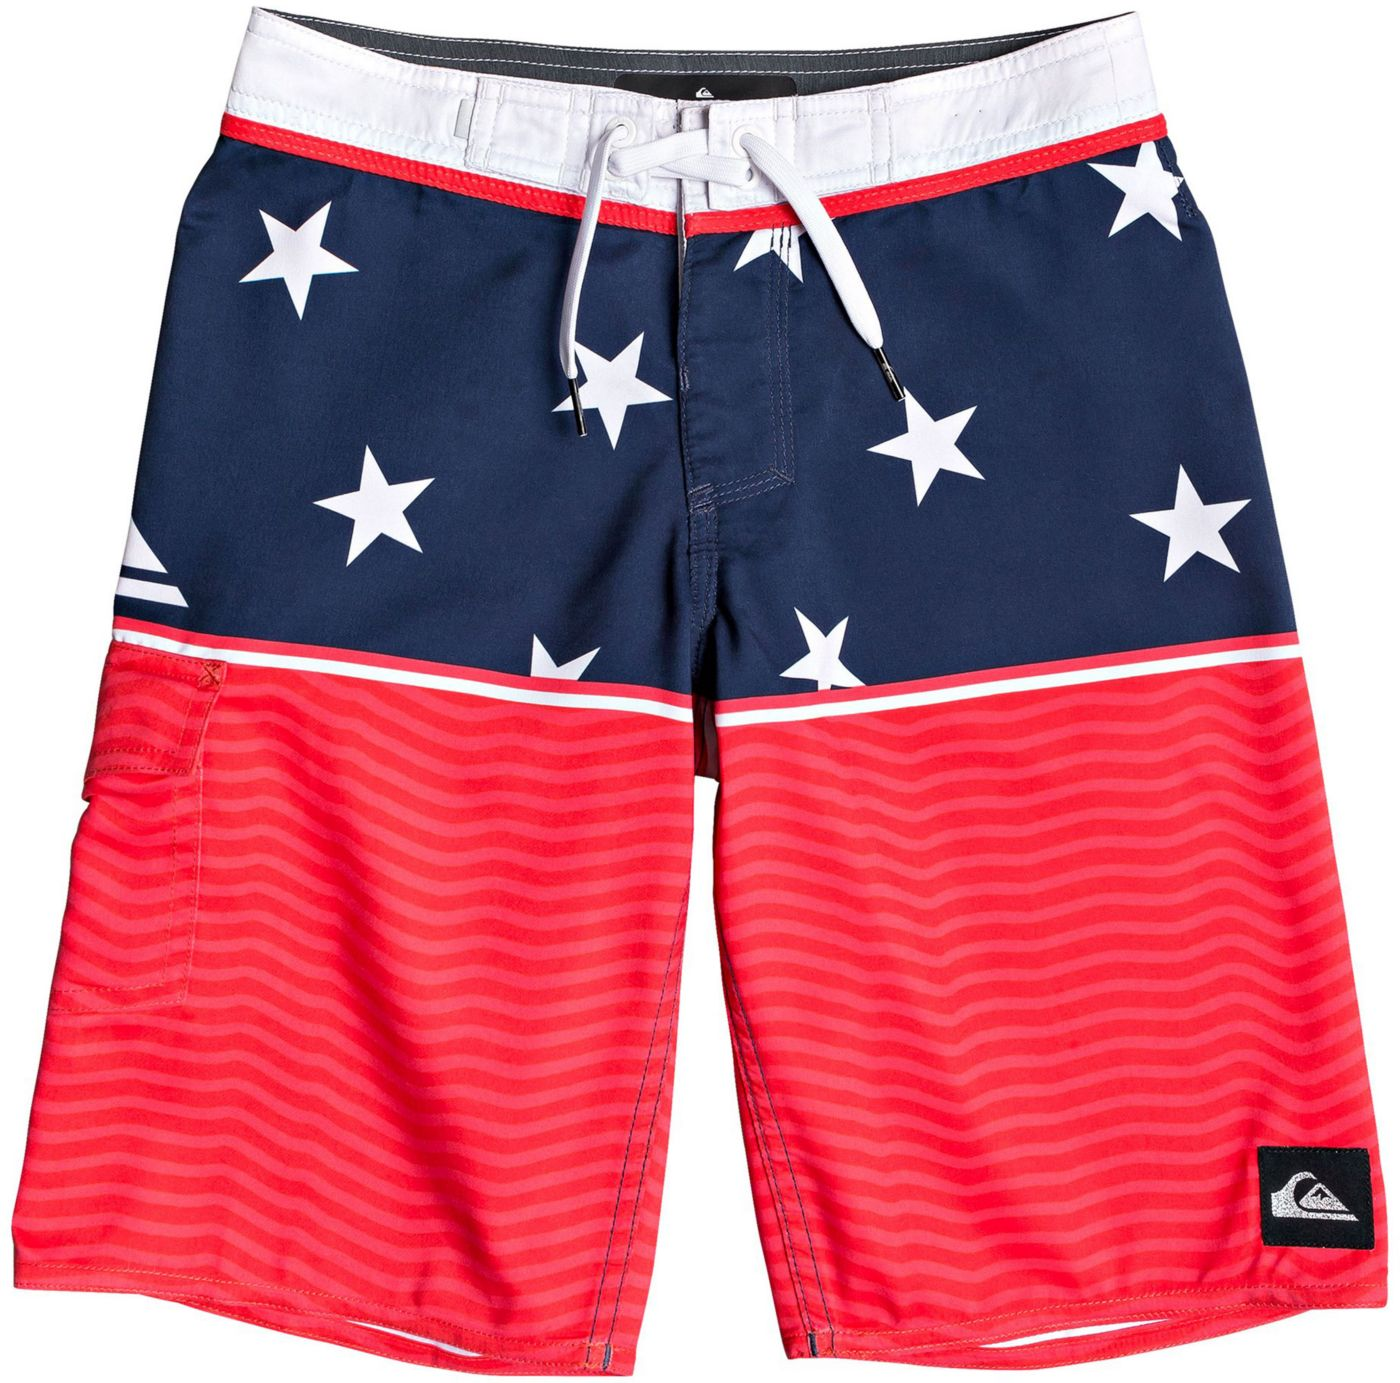 Quiksilver Boys' Everyday Division Board Shorts